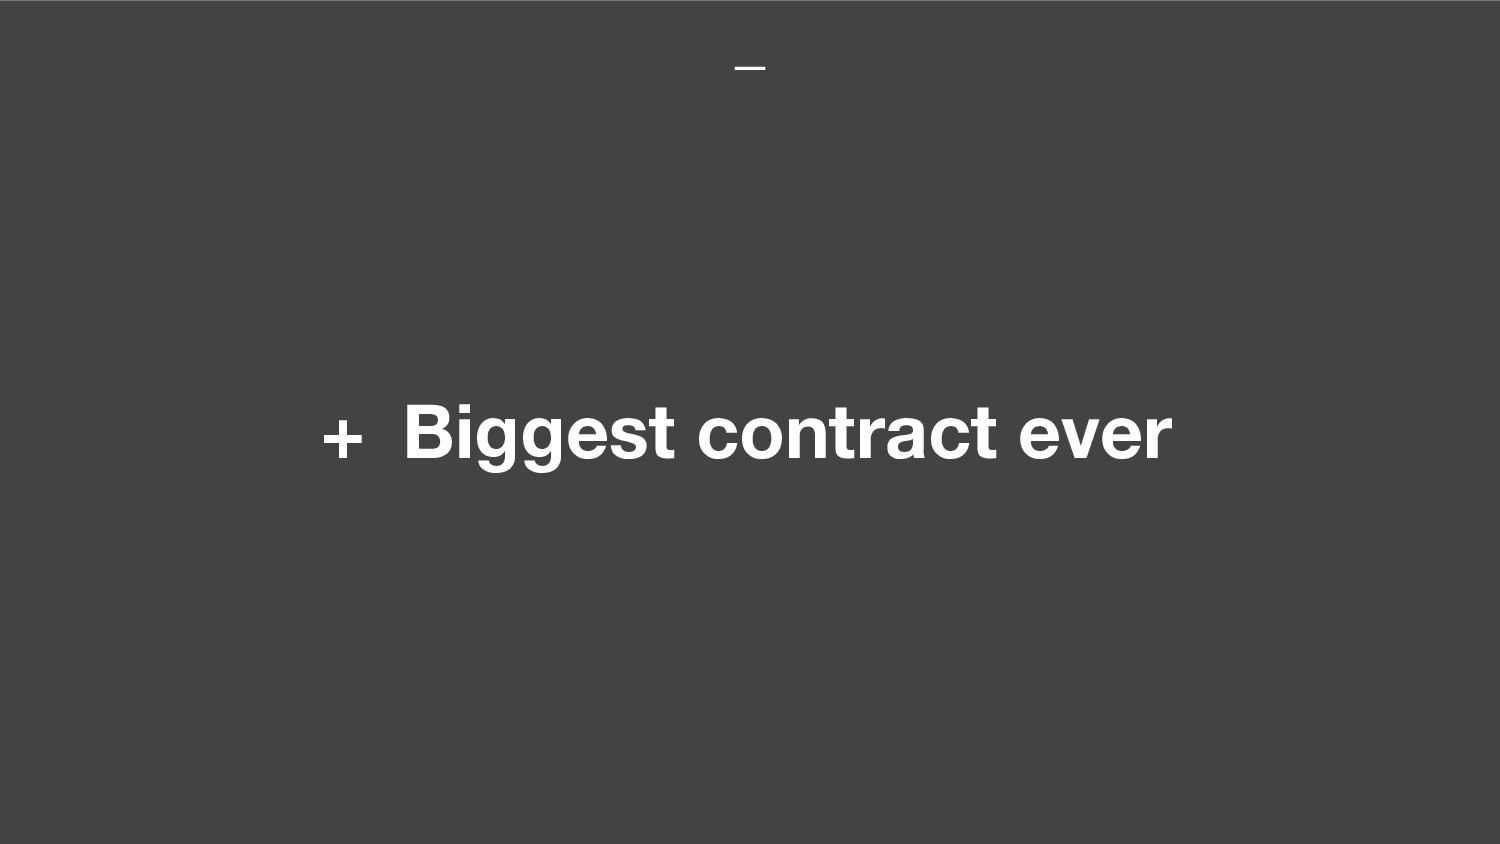 + Biggest contract ever